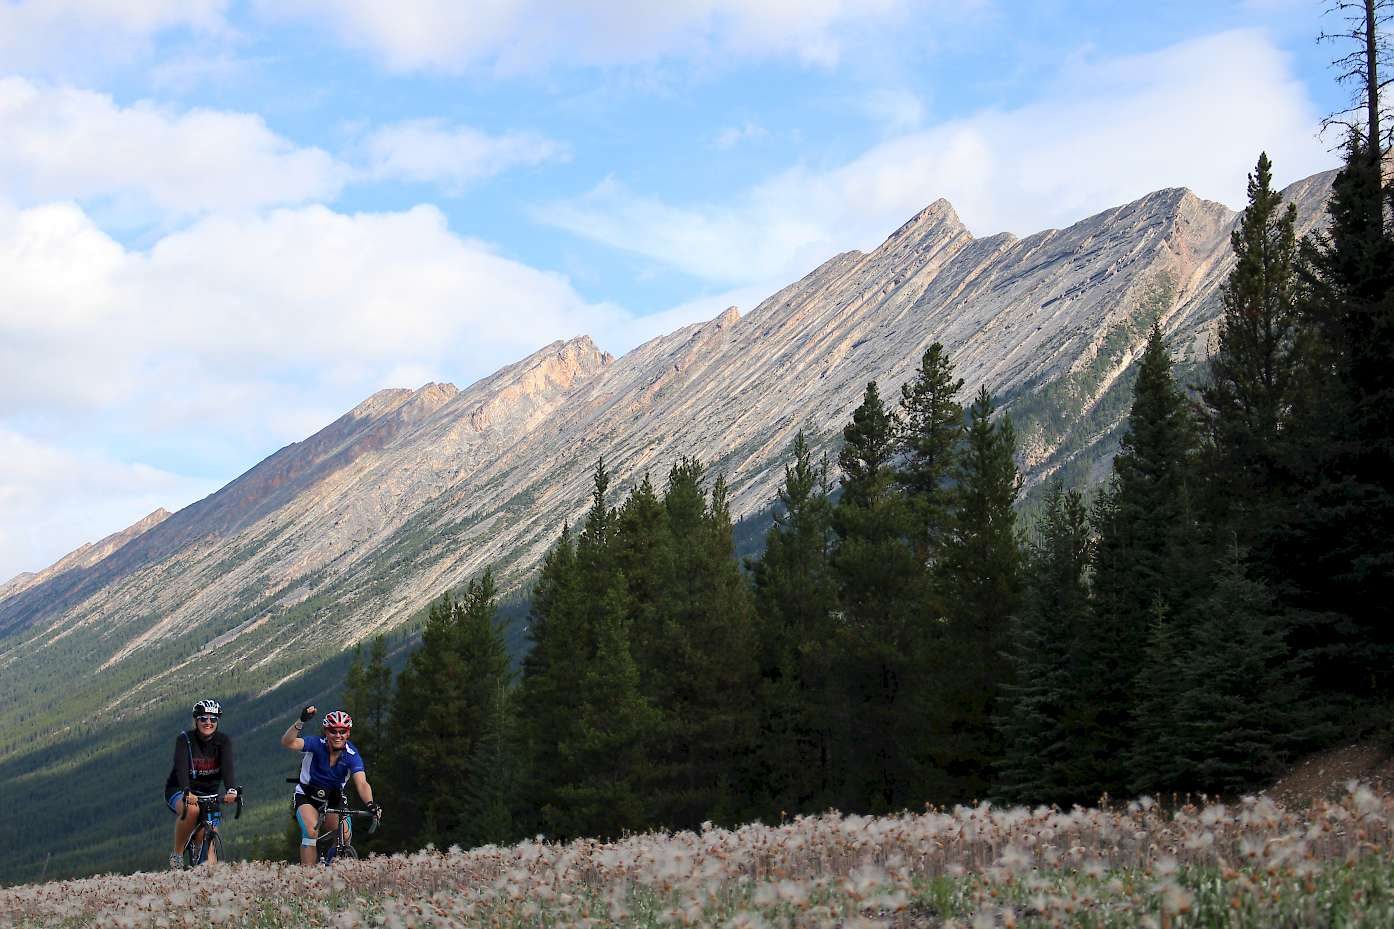 Anna and Dean biking Jasper to Banff.